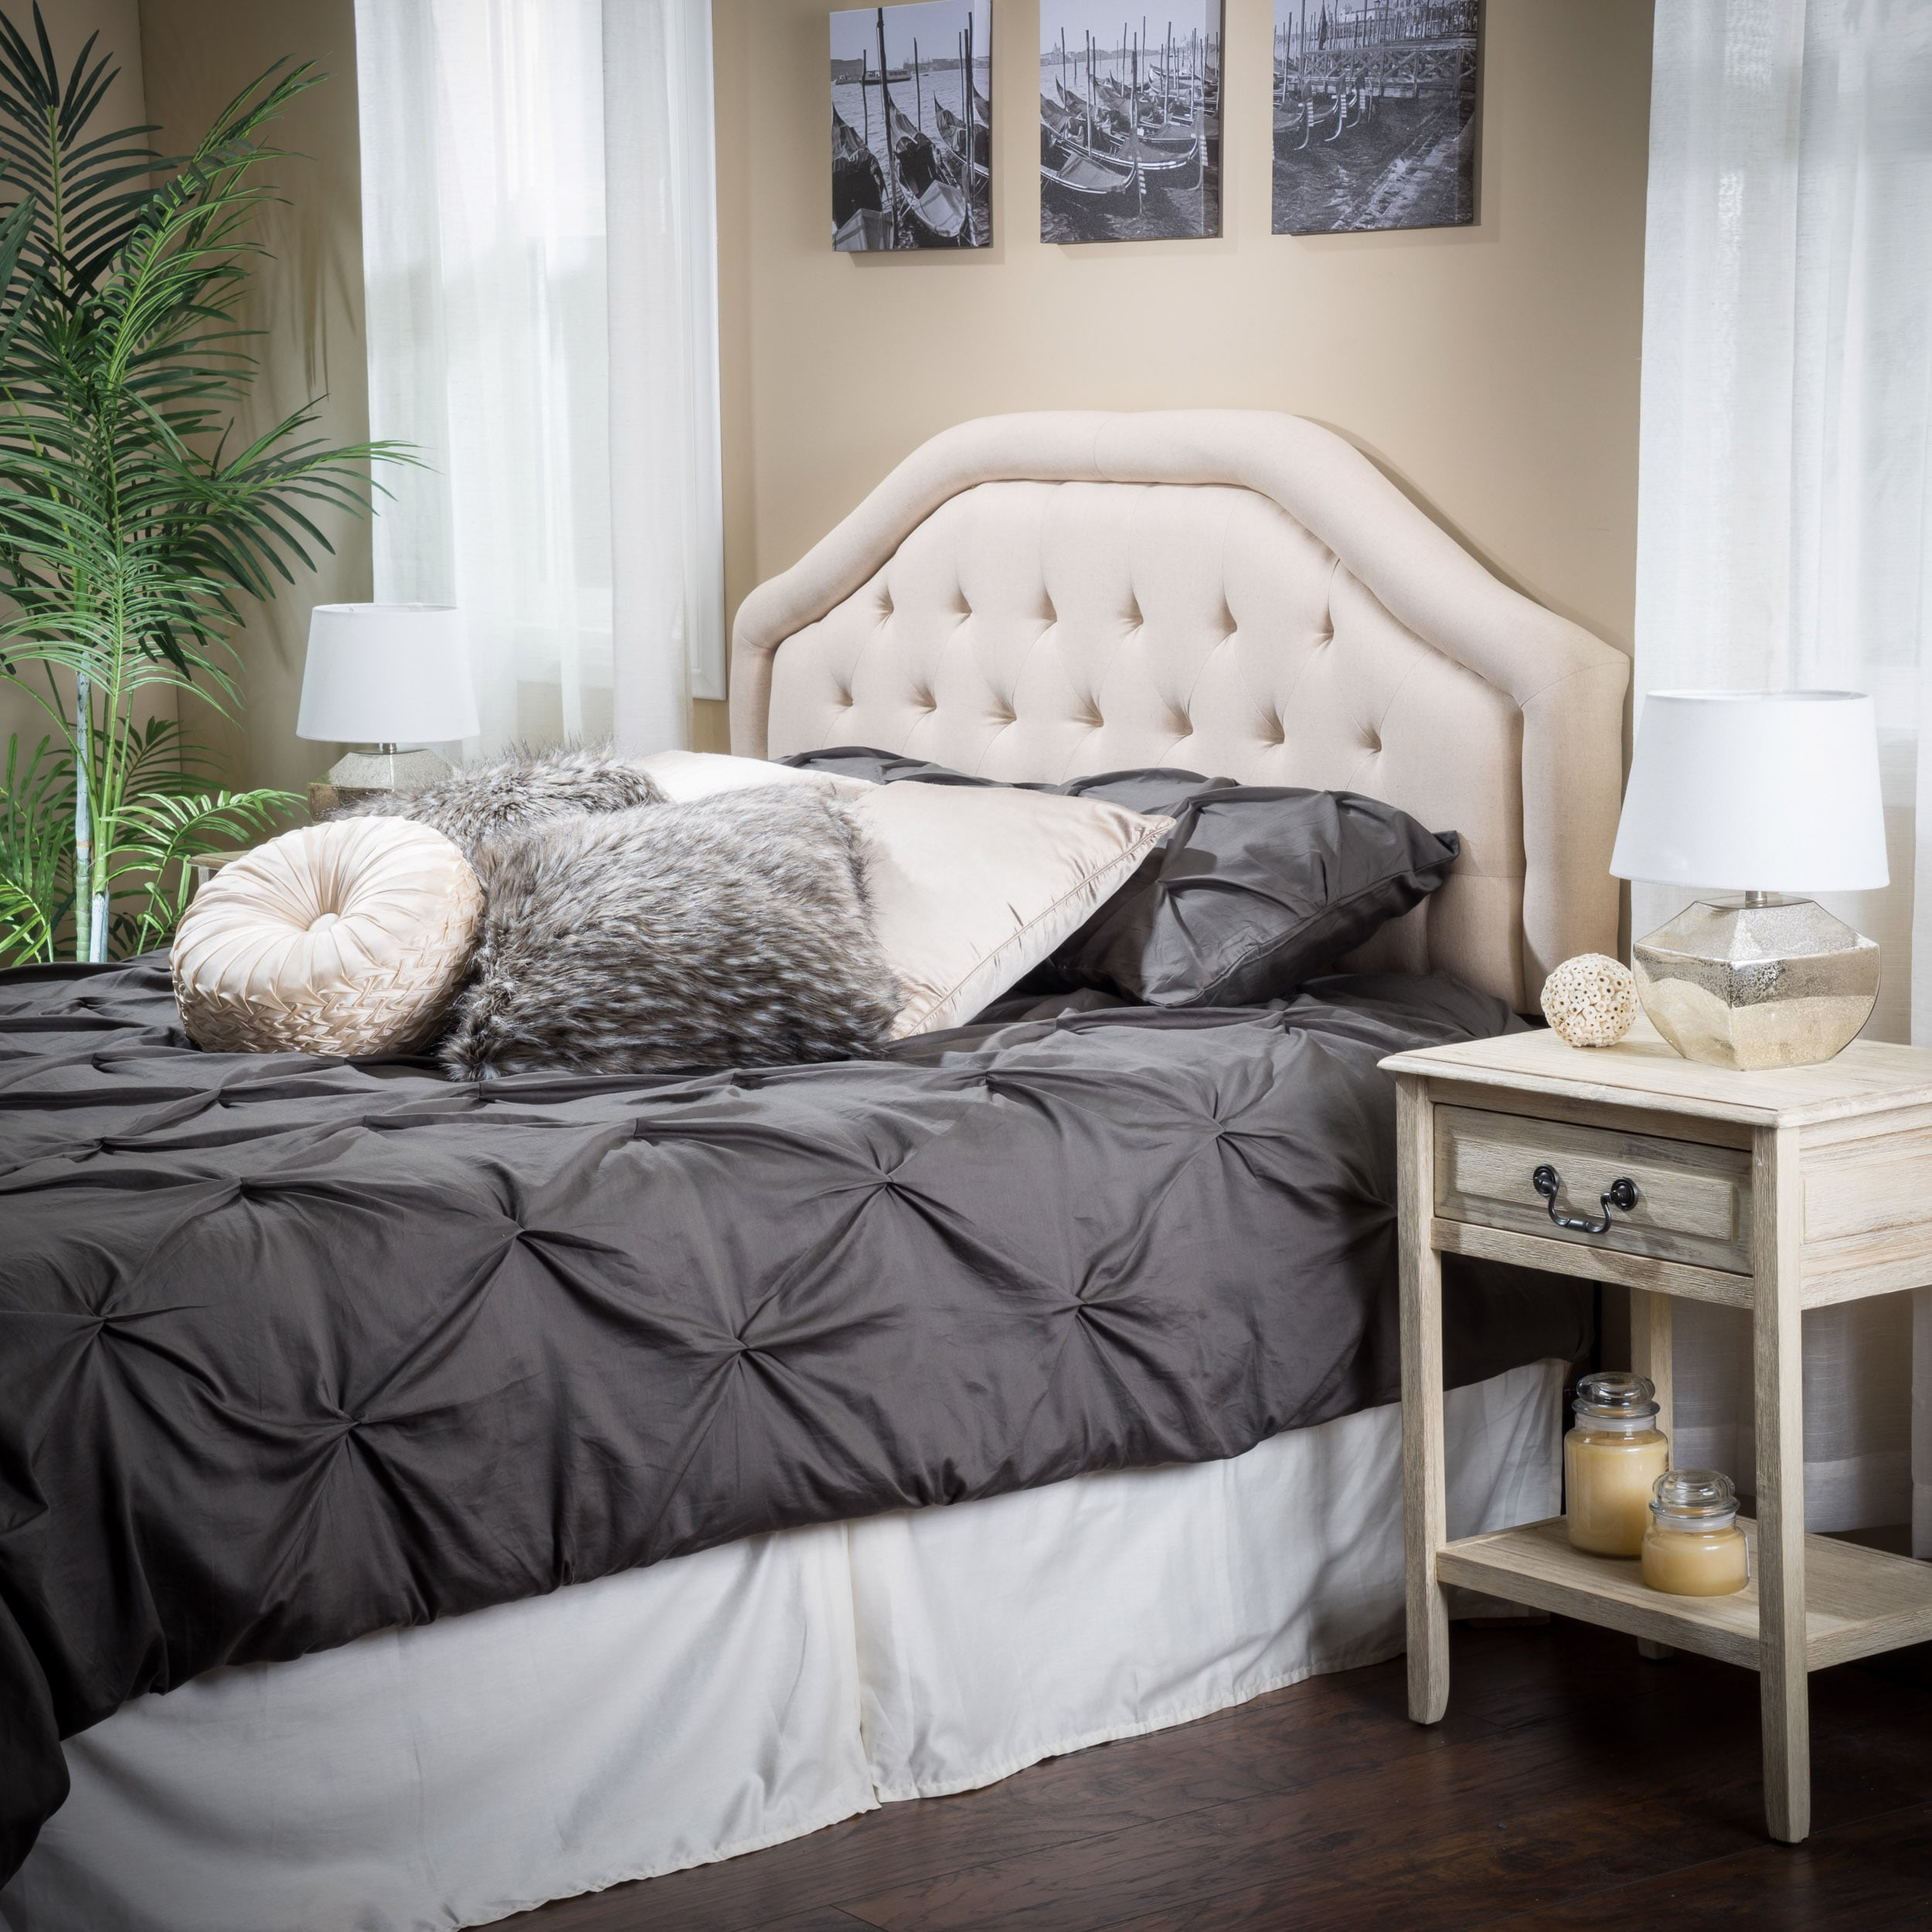 in white house quilt flawless large suzanna decor room king set bedroom linens shopping velvet cotton covers bed of chenille harbor super gallery comforters online uk black bedding queen magnificent piece ideas size duvets full and duvet best reversible cheap cover kids california